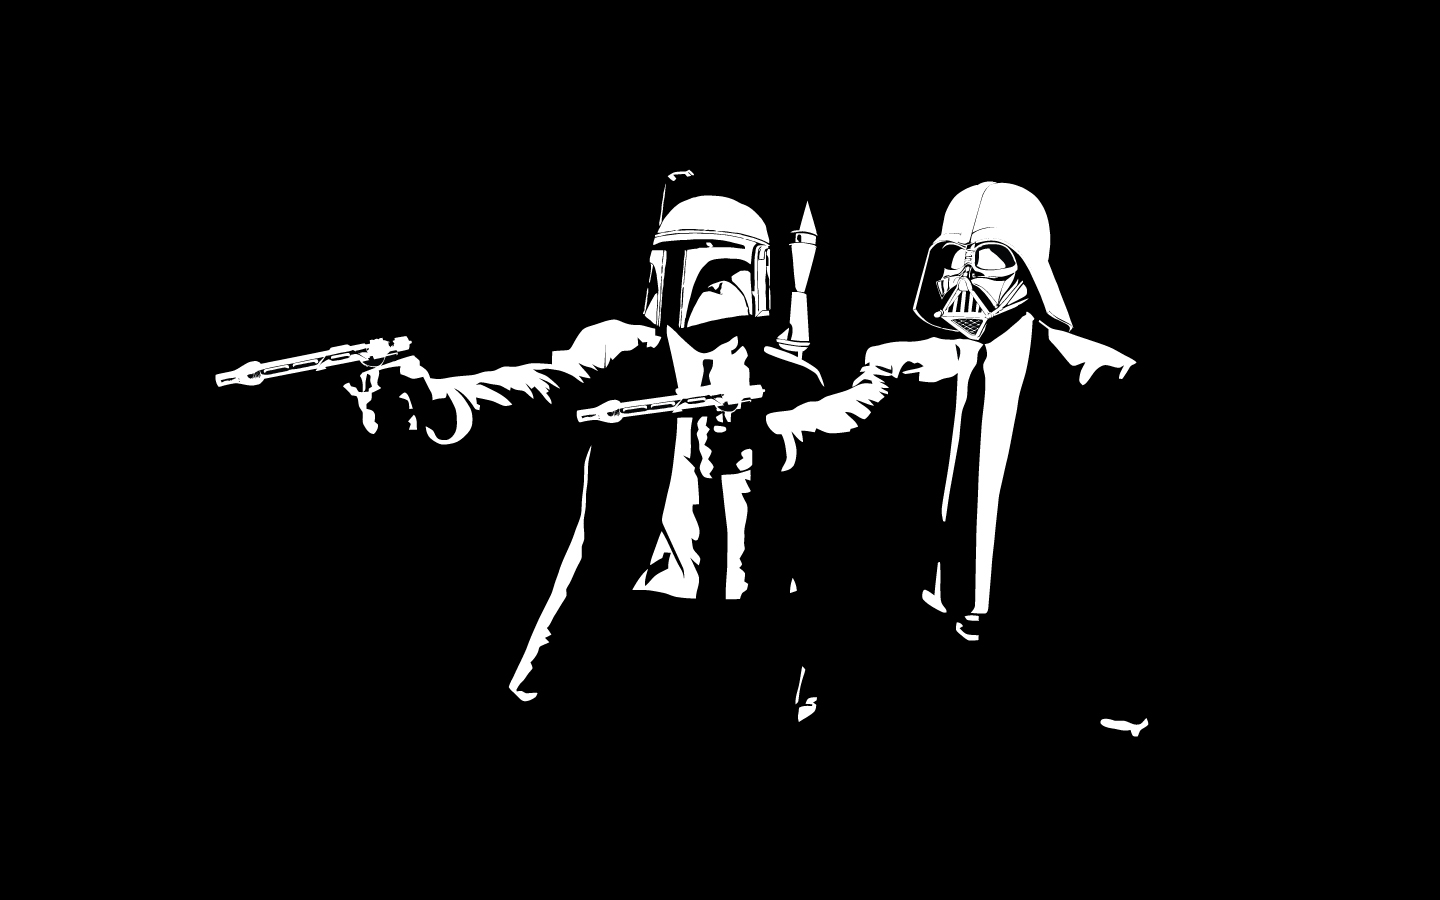 Funny-Wallpaper-Pulp-Fiction-Parody-star-wars-25853026-1440-900.jpg